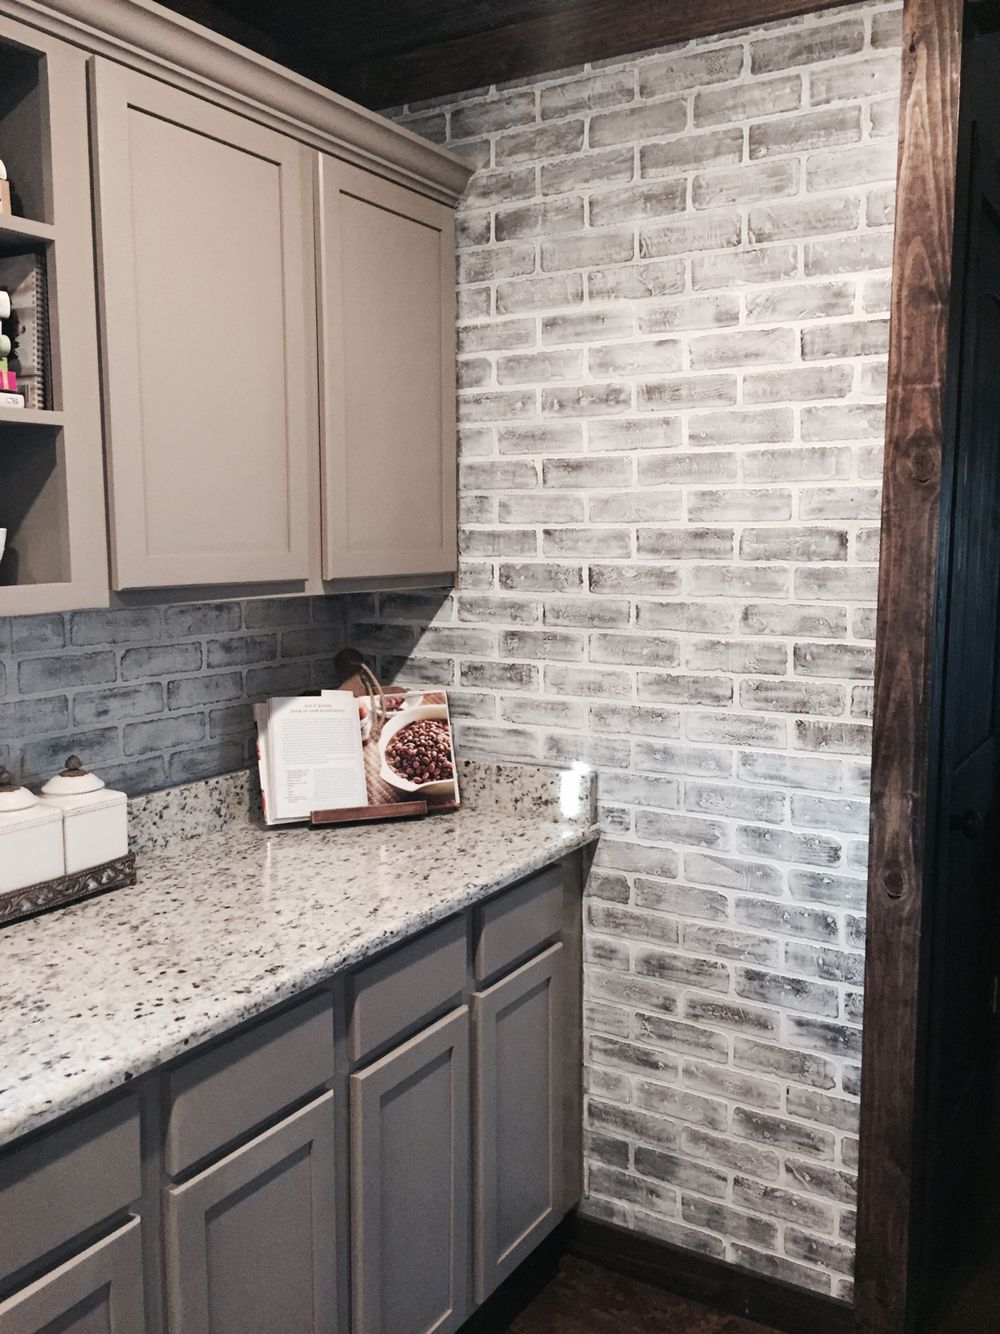 Lowes Brick Panels Painted White Brick Backsplash Paint Color Studio Taupe By Behr Faux Brick Brick Backsplash Kitchen Faux Brick Walls Brick Wall Paneling